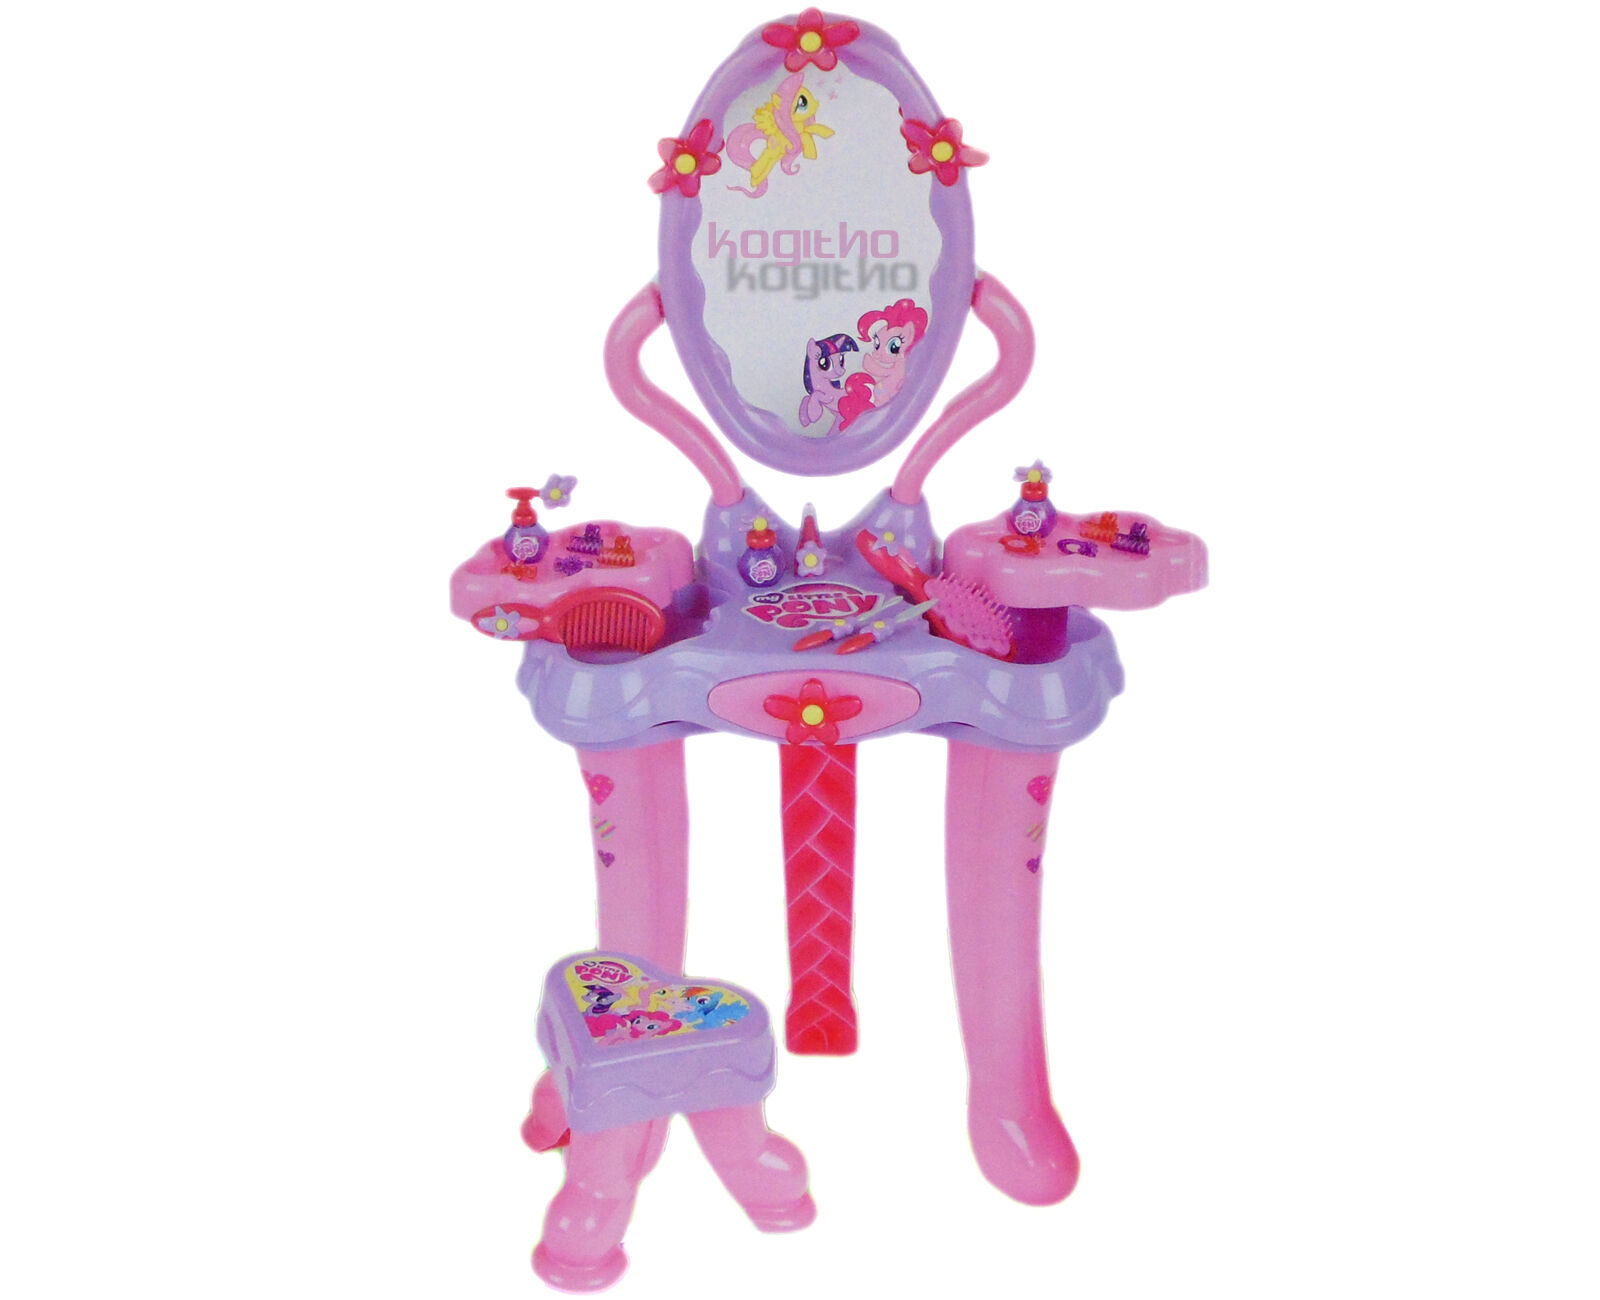 Aufblasbarer Kindersessel My Little Pony Aufblasbarer Kindersessel Plastik Mulitcolour 65